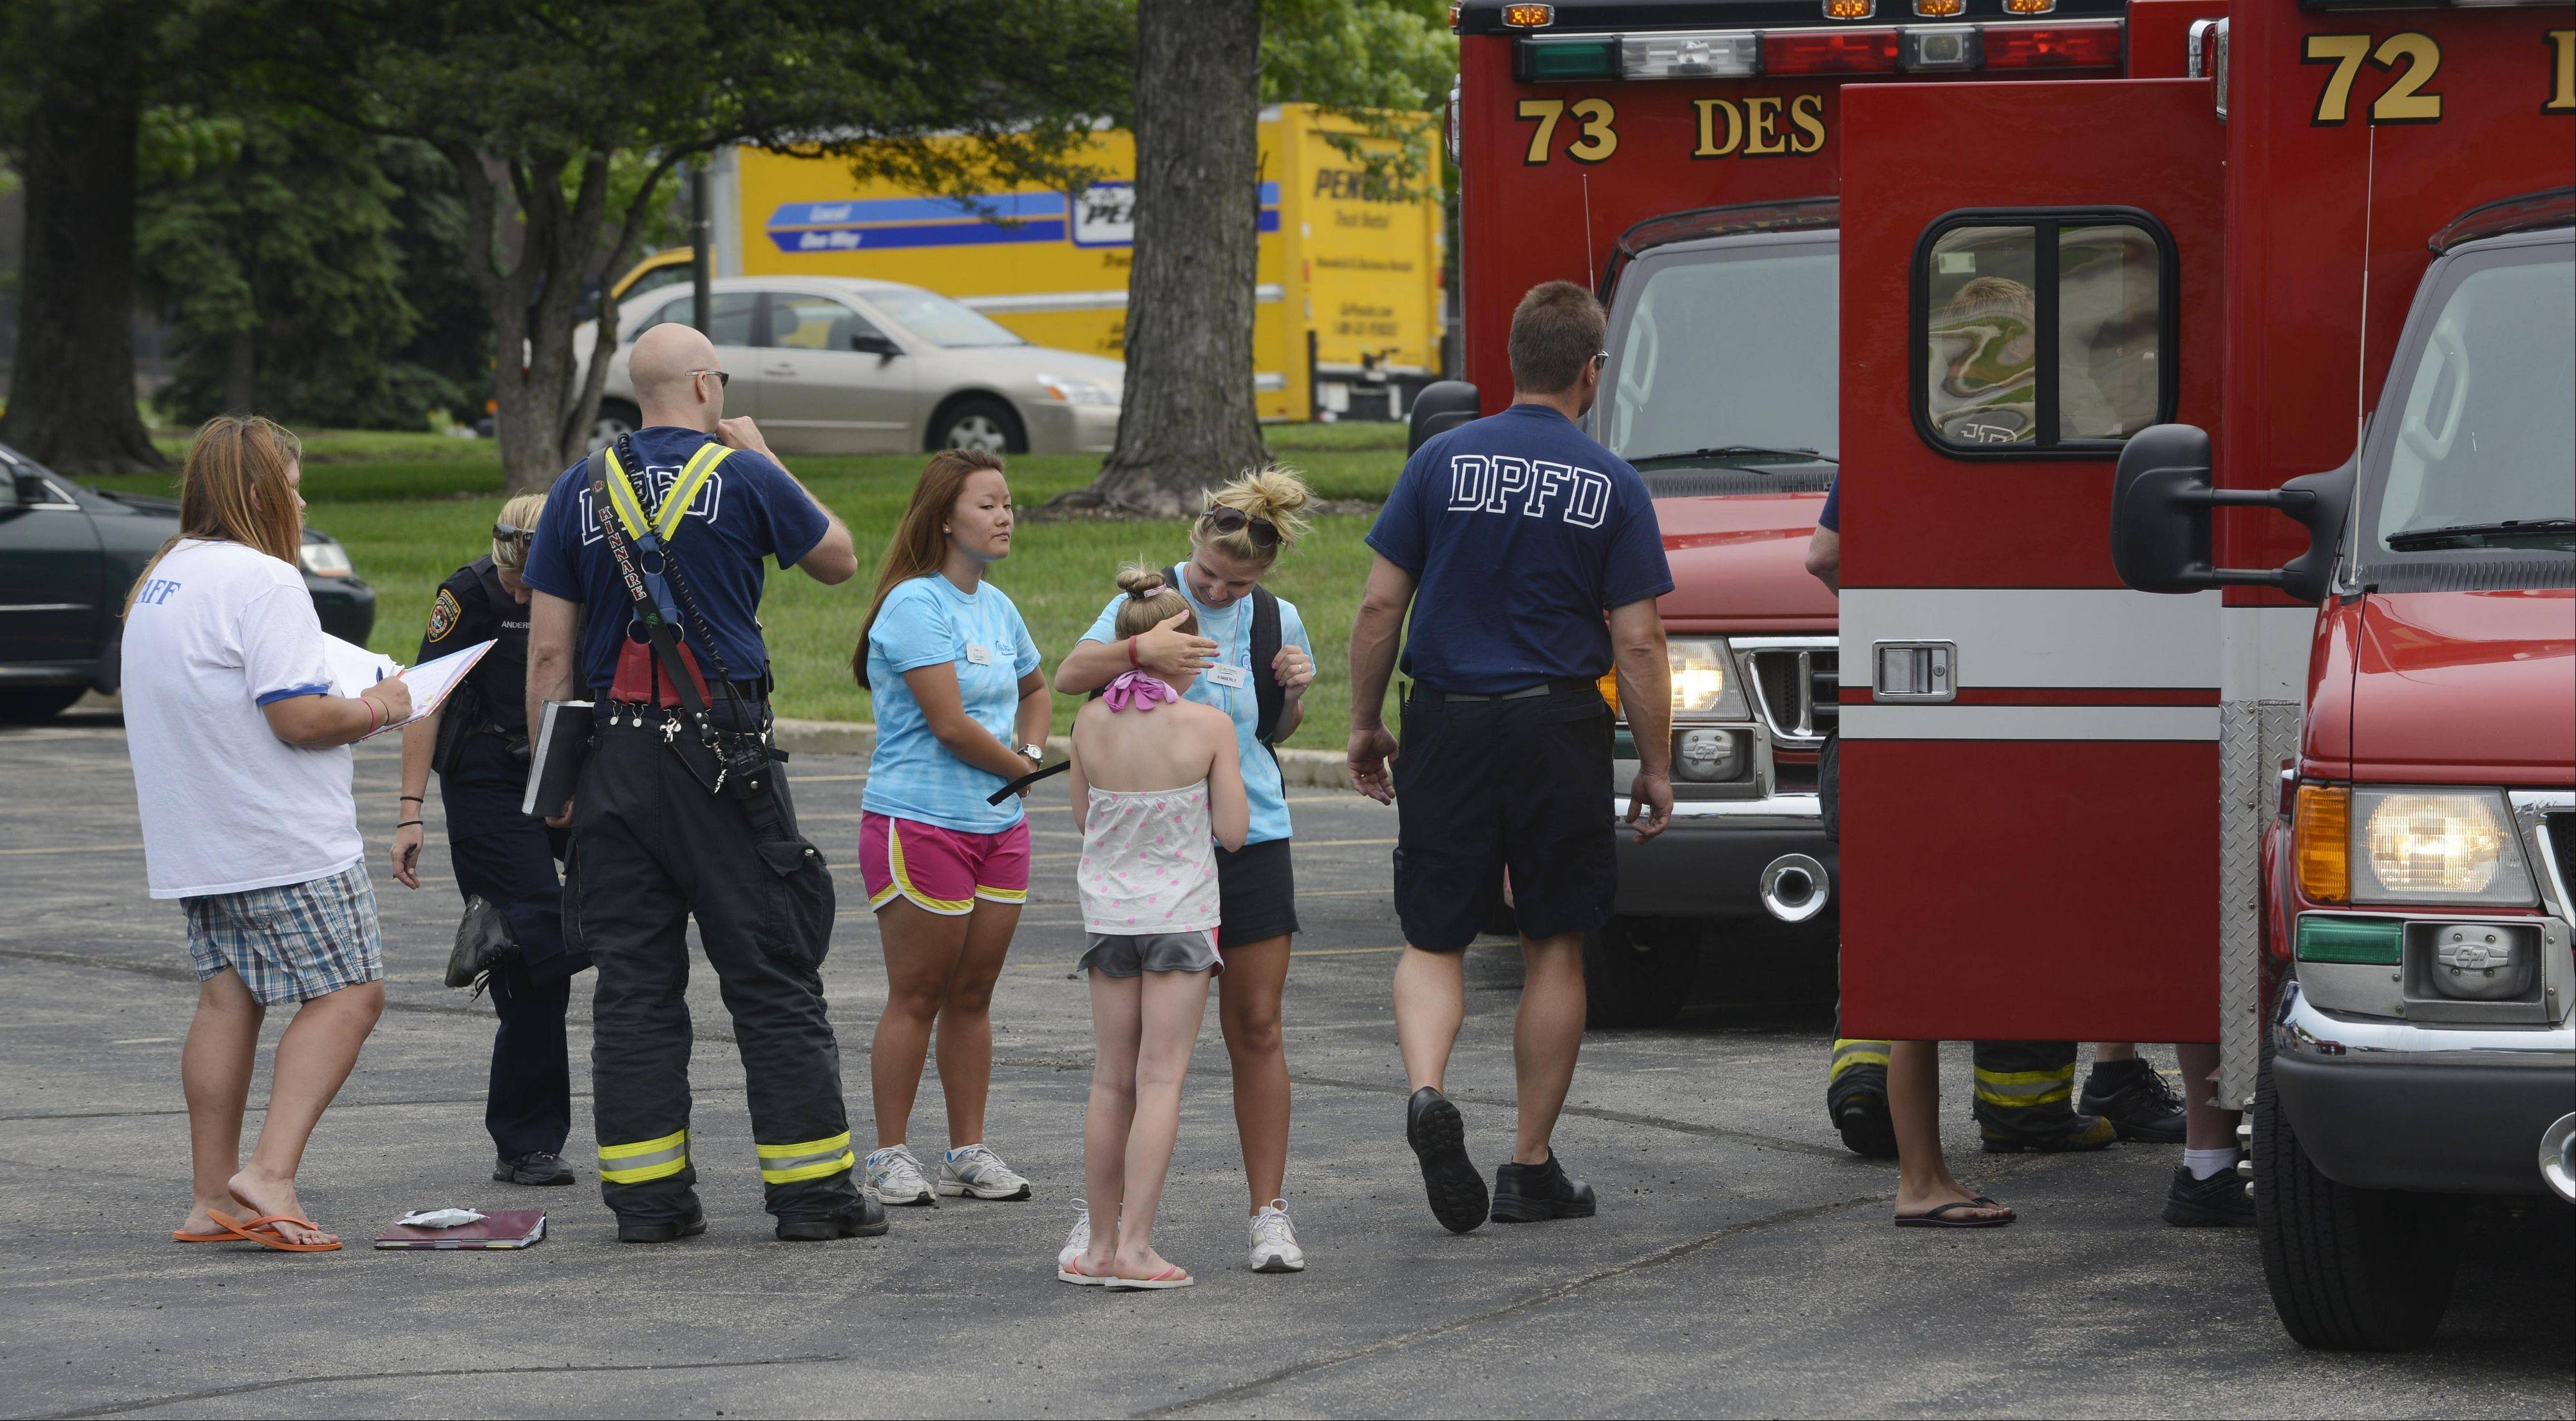 Firefighter paramedics assist children following an Friday morning accident involving two school buses that were carrying participants of a Des Plaines Park District program.